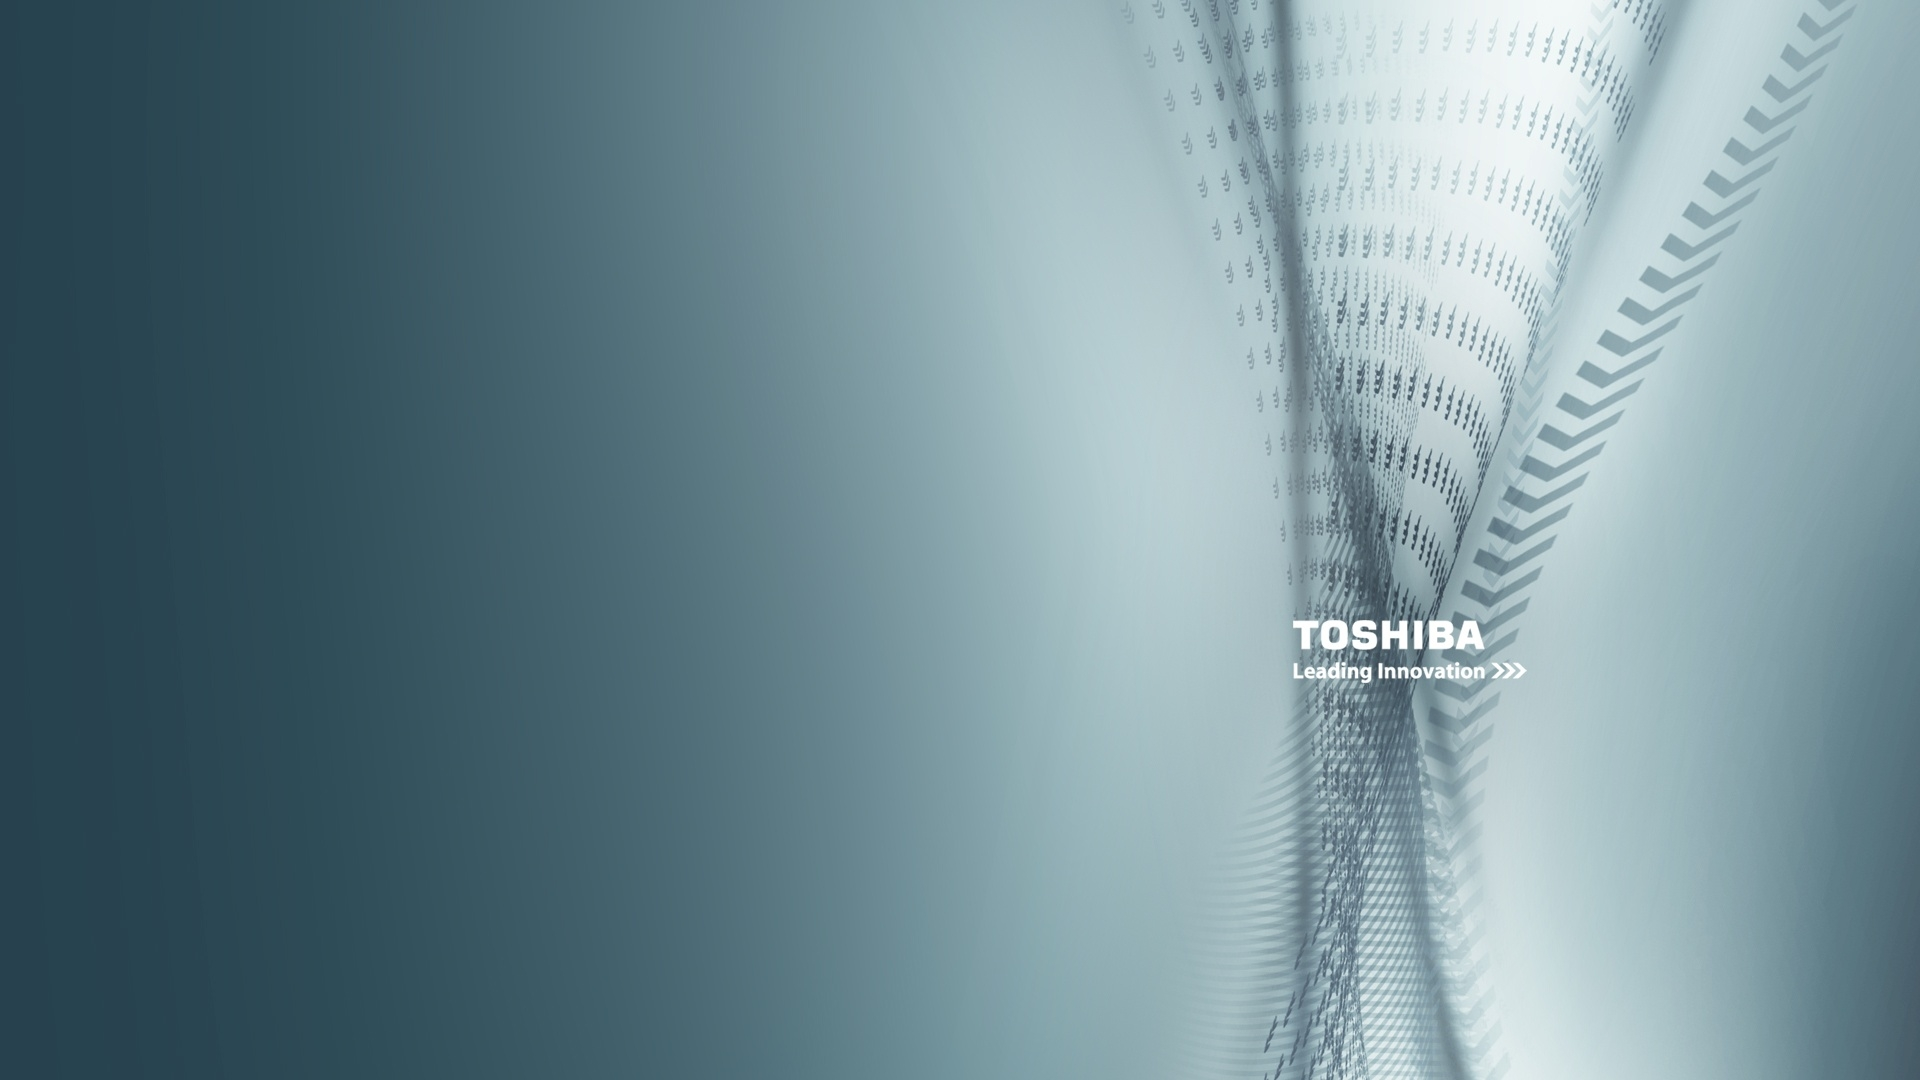 Toshiba HD Wallpapers | Full HD Pictures: fullhdpictures.com/toshiba-logo-and-hq-wallpapers.html/toshiba-hd...